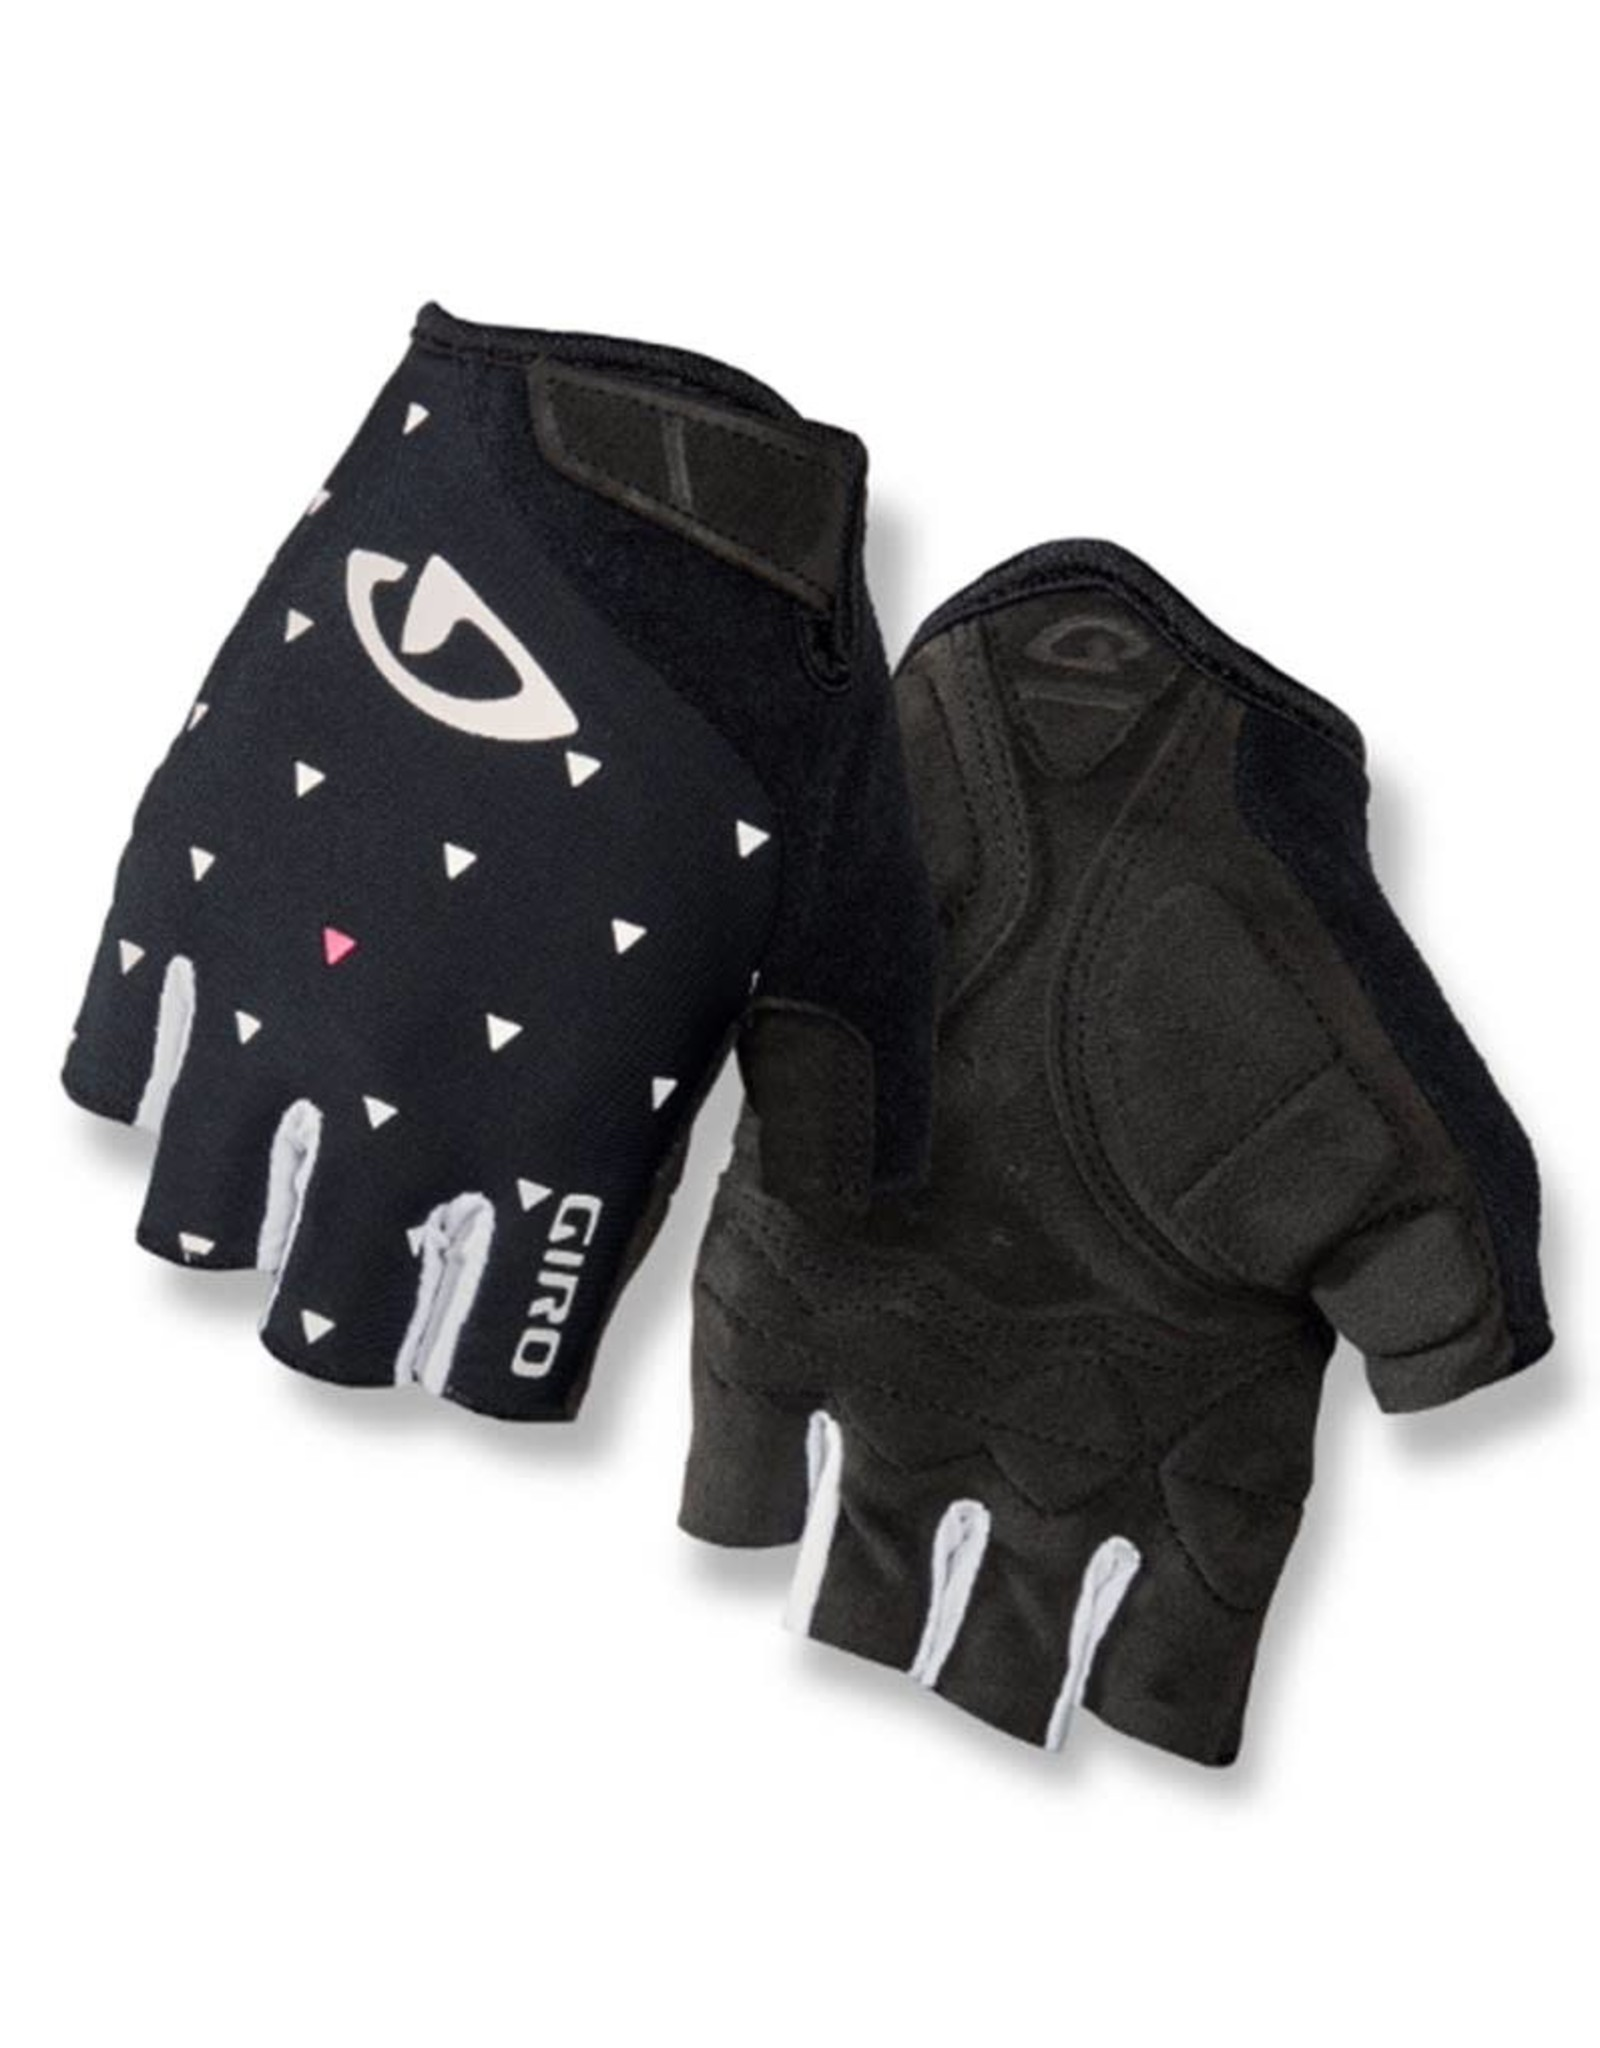 Giro Jag'ette Short Finger Glove Shark Tooth